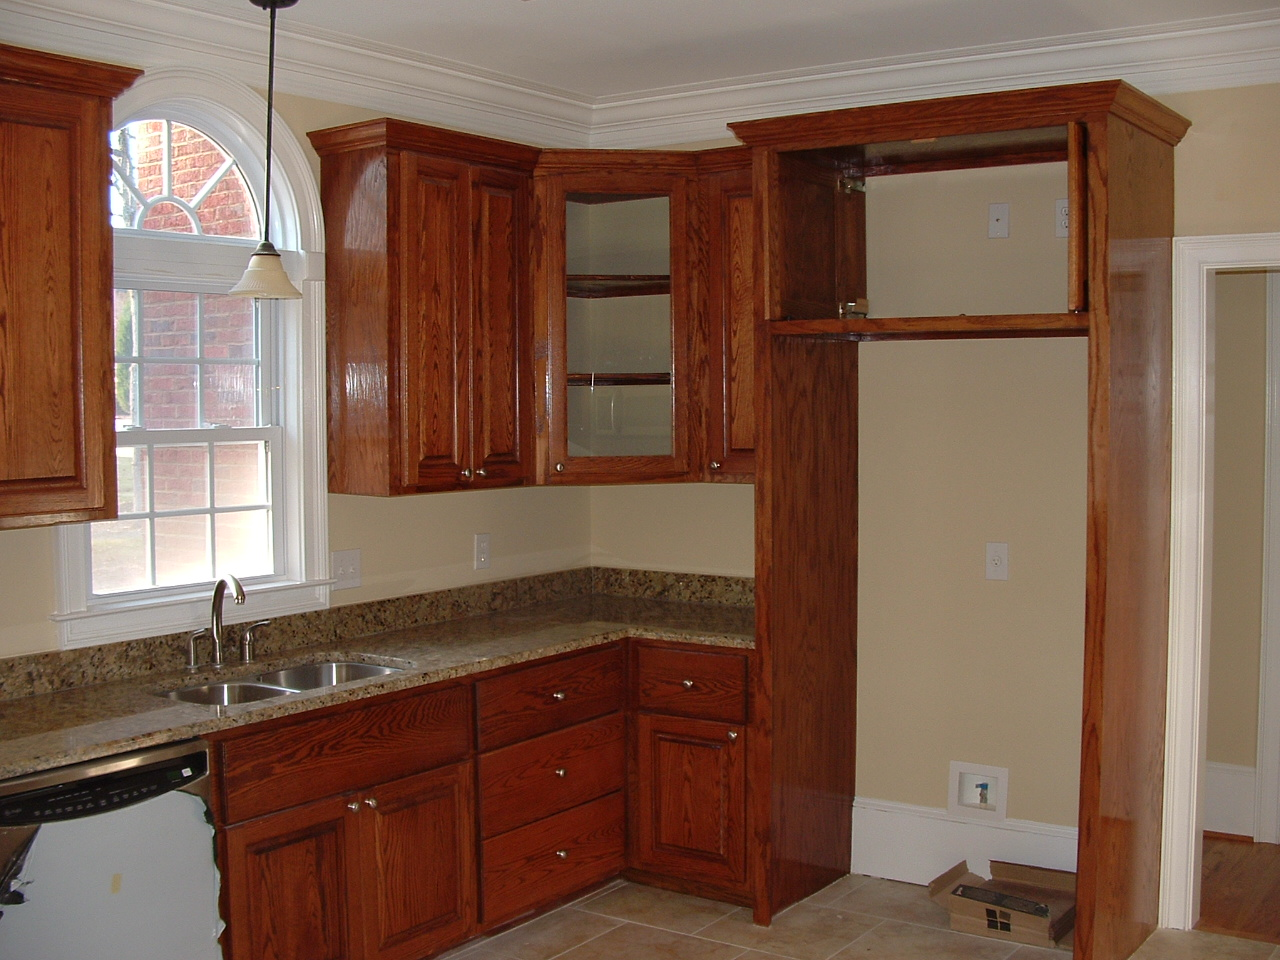 Kitchen free standing cabinets